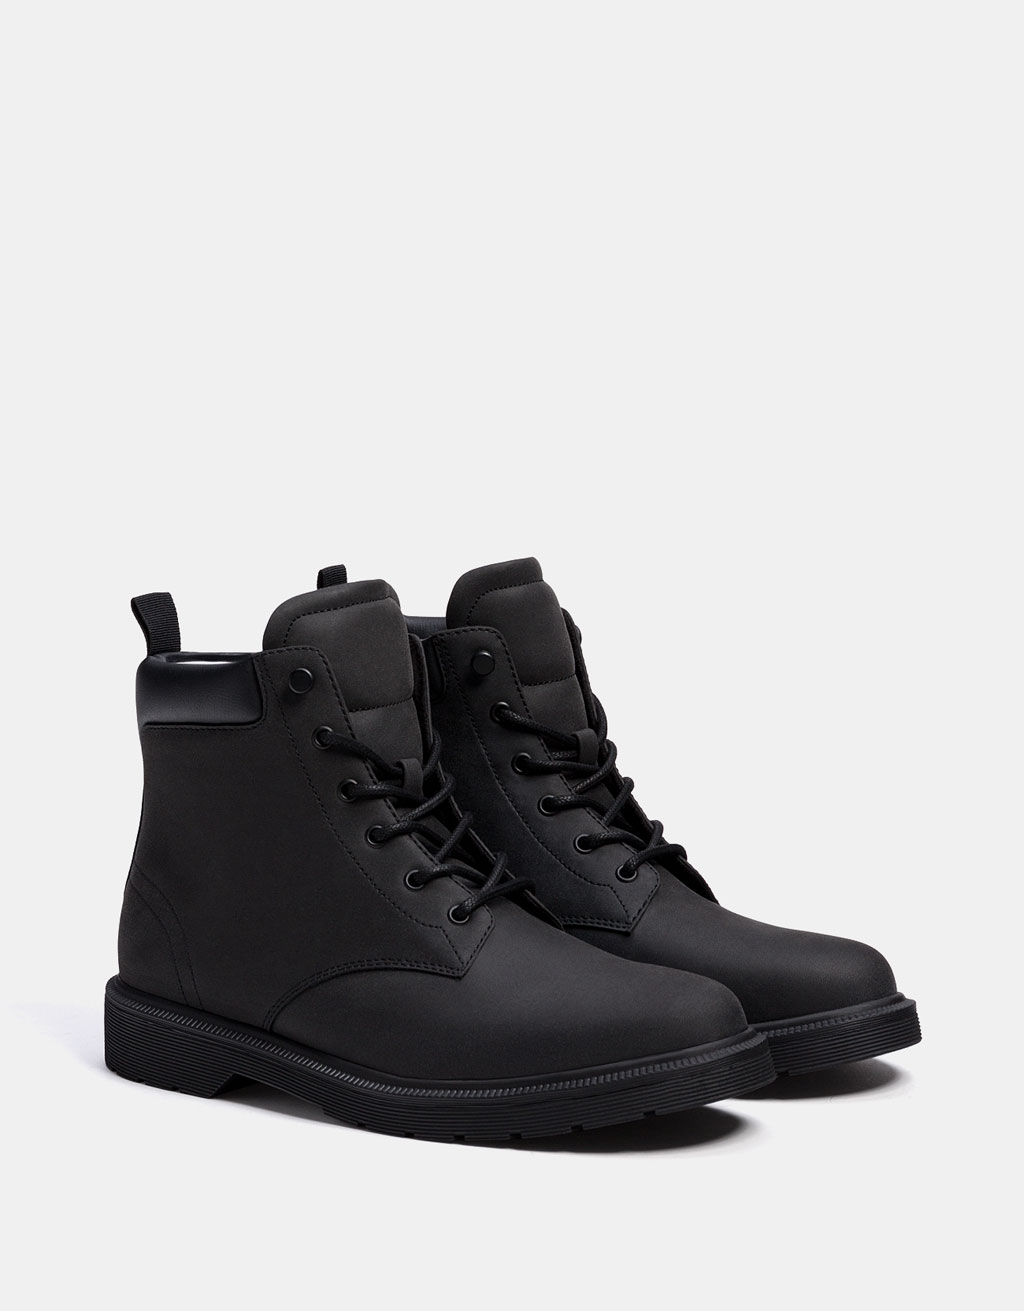 Men's lined lace-up boots